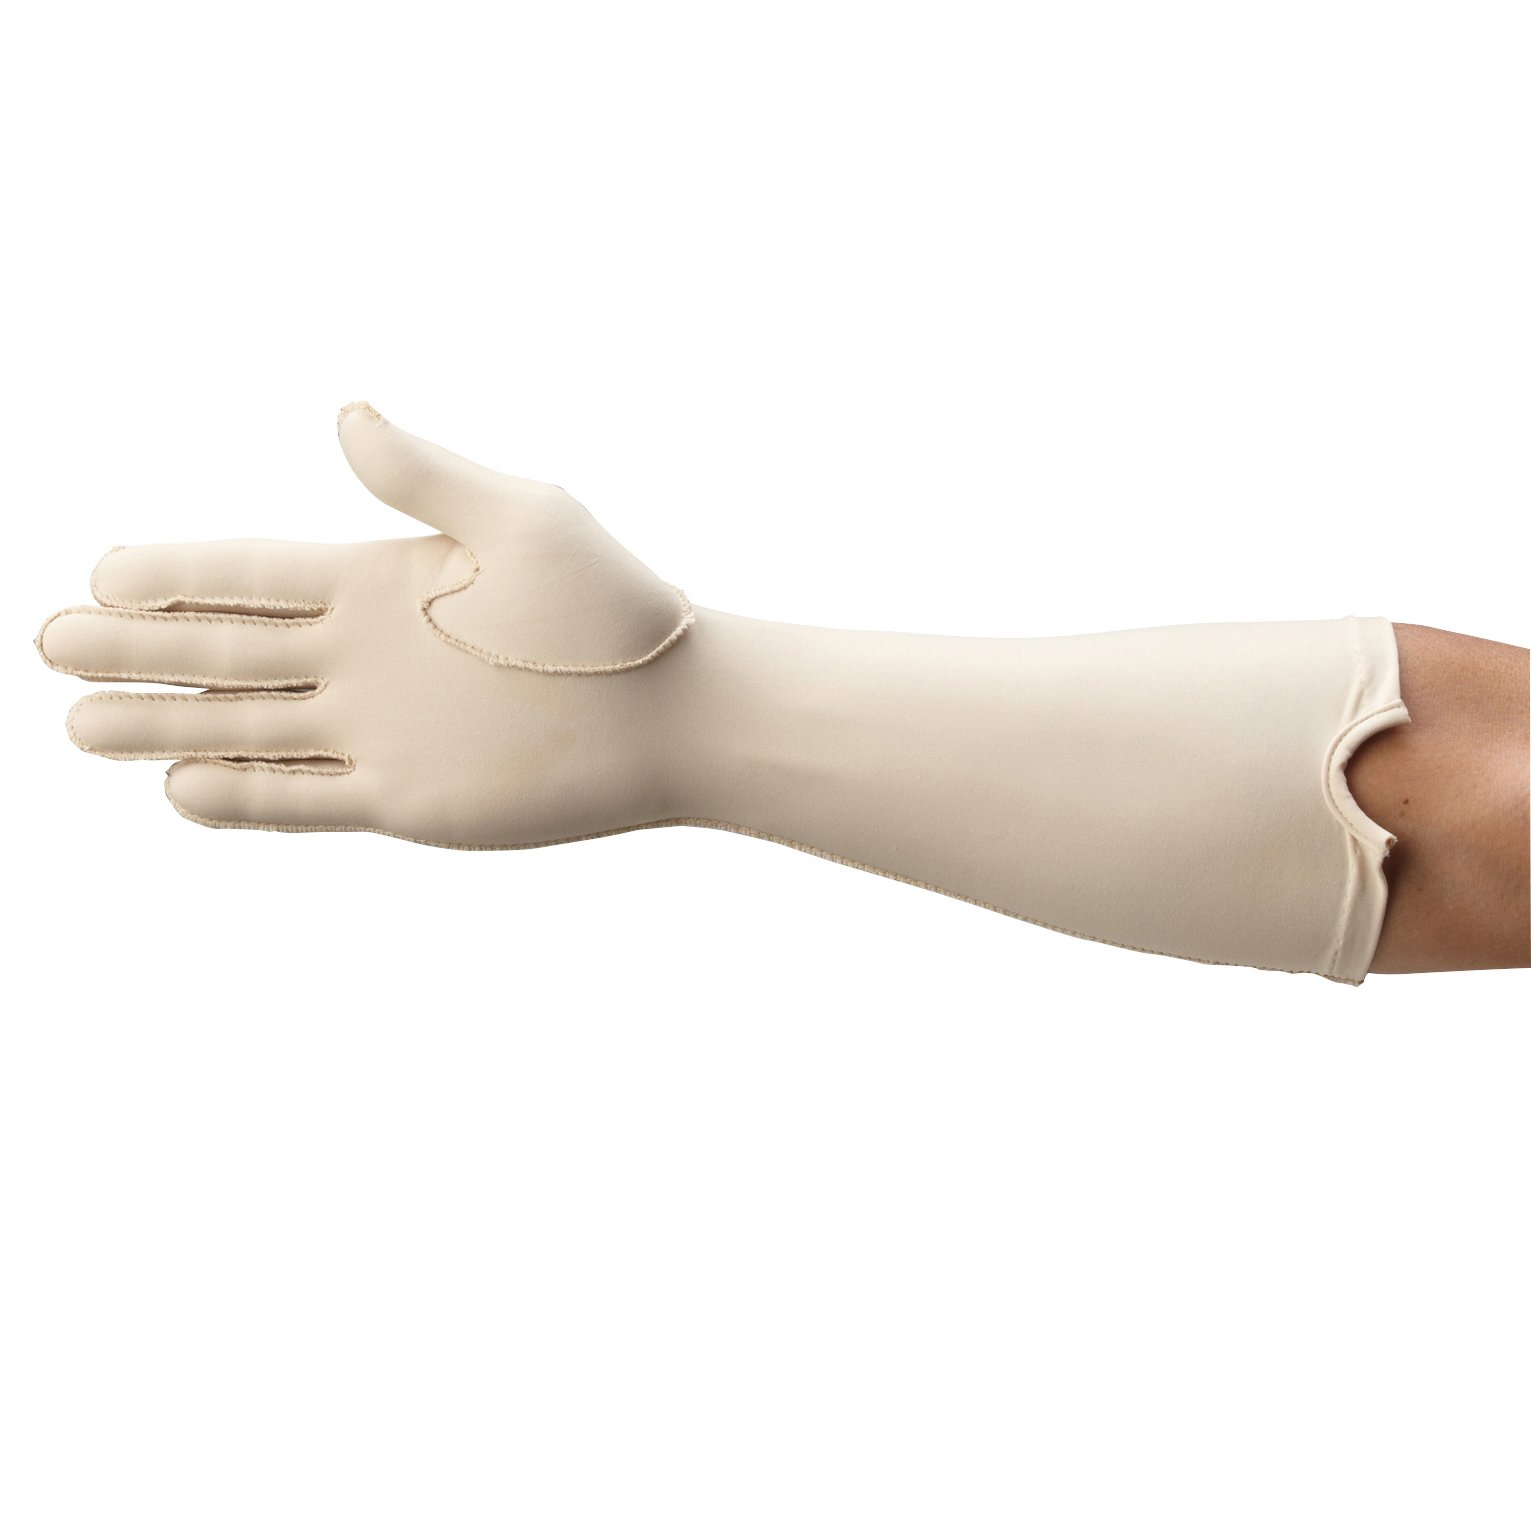 Rolyan Forearm Length Right Compression Glove, Full Finger Compression Sleeve to Control Edema and Swelling, Water Retention, and Vericose Veins, Covers Fingers to Forearm on Right Arm, Small